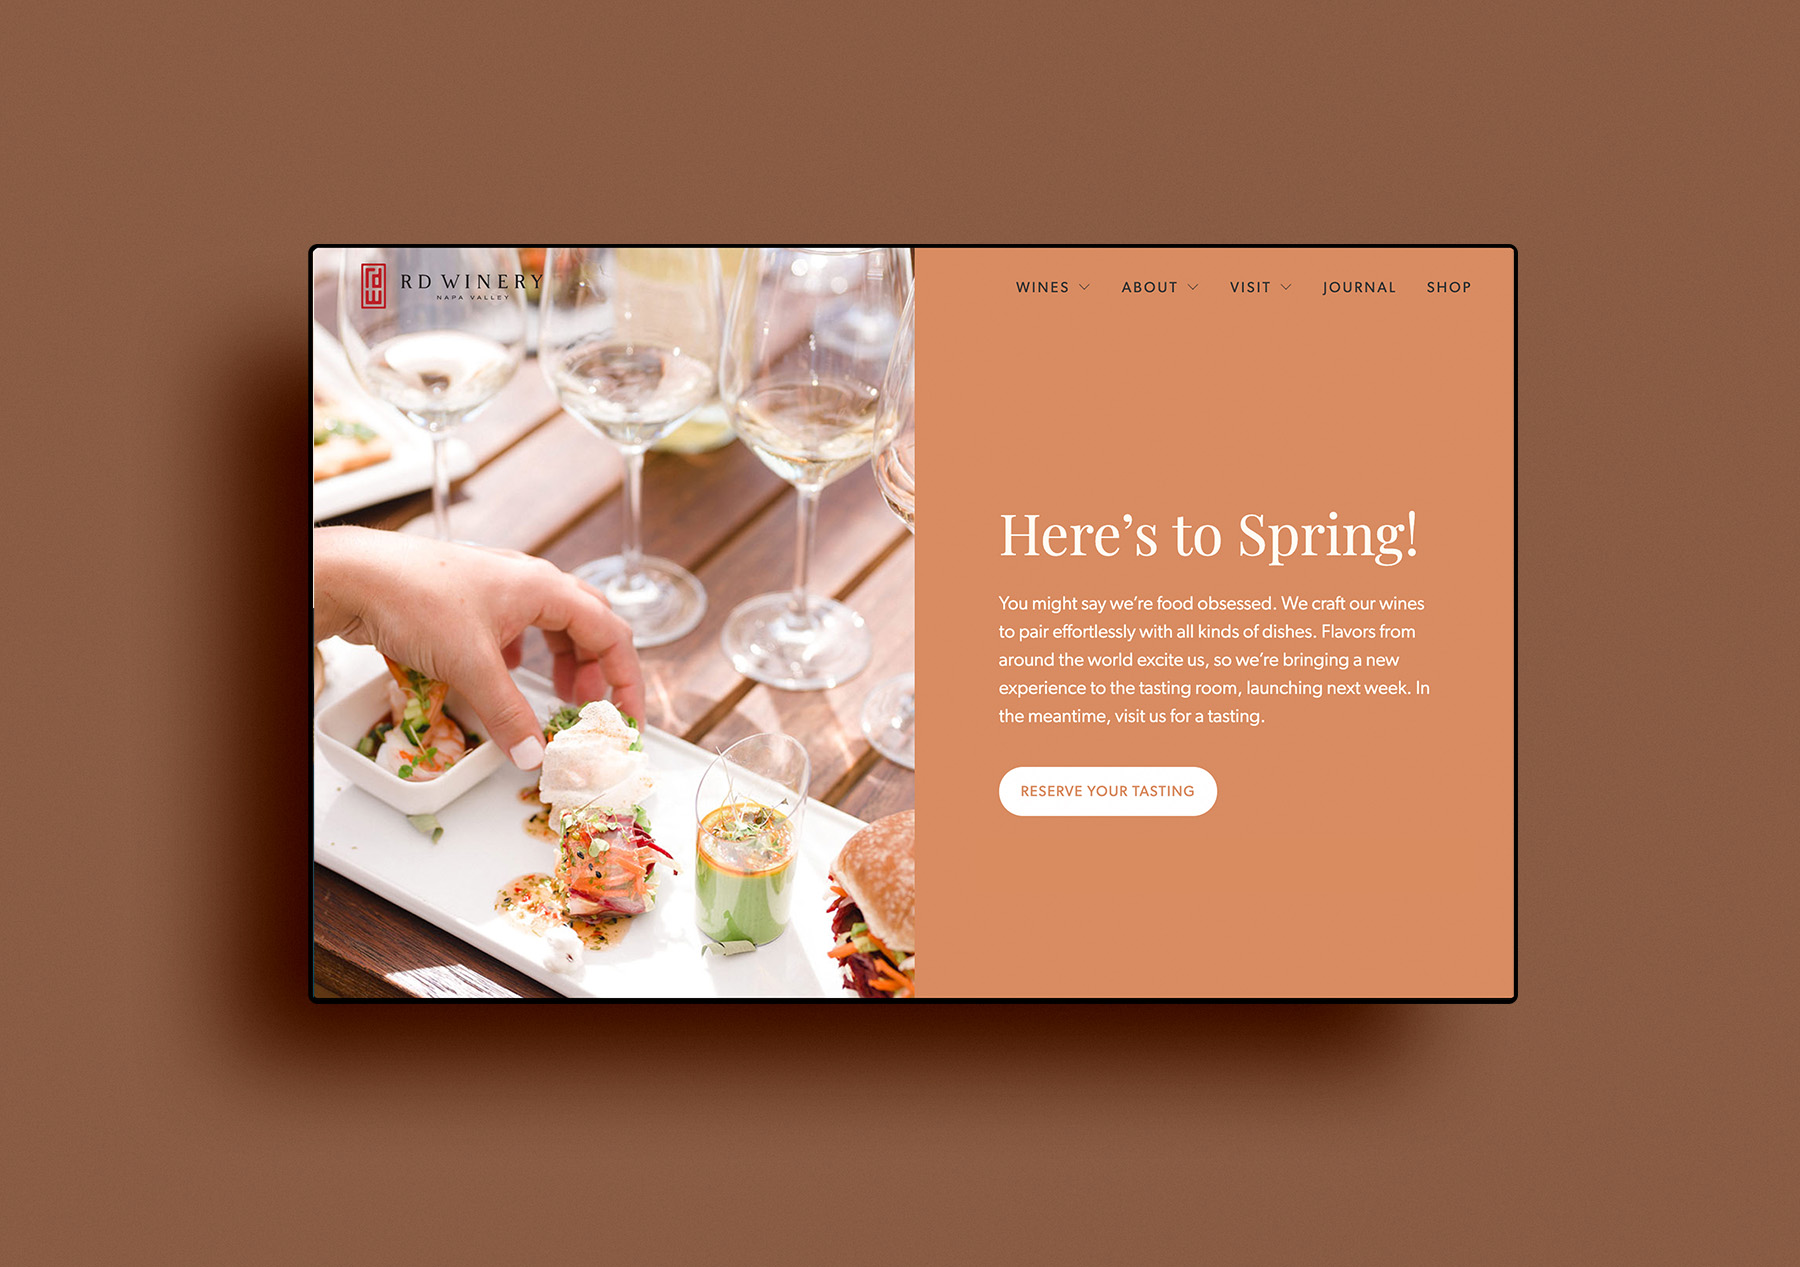 website design rd winery home page